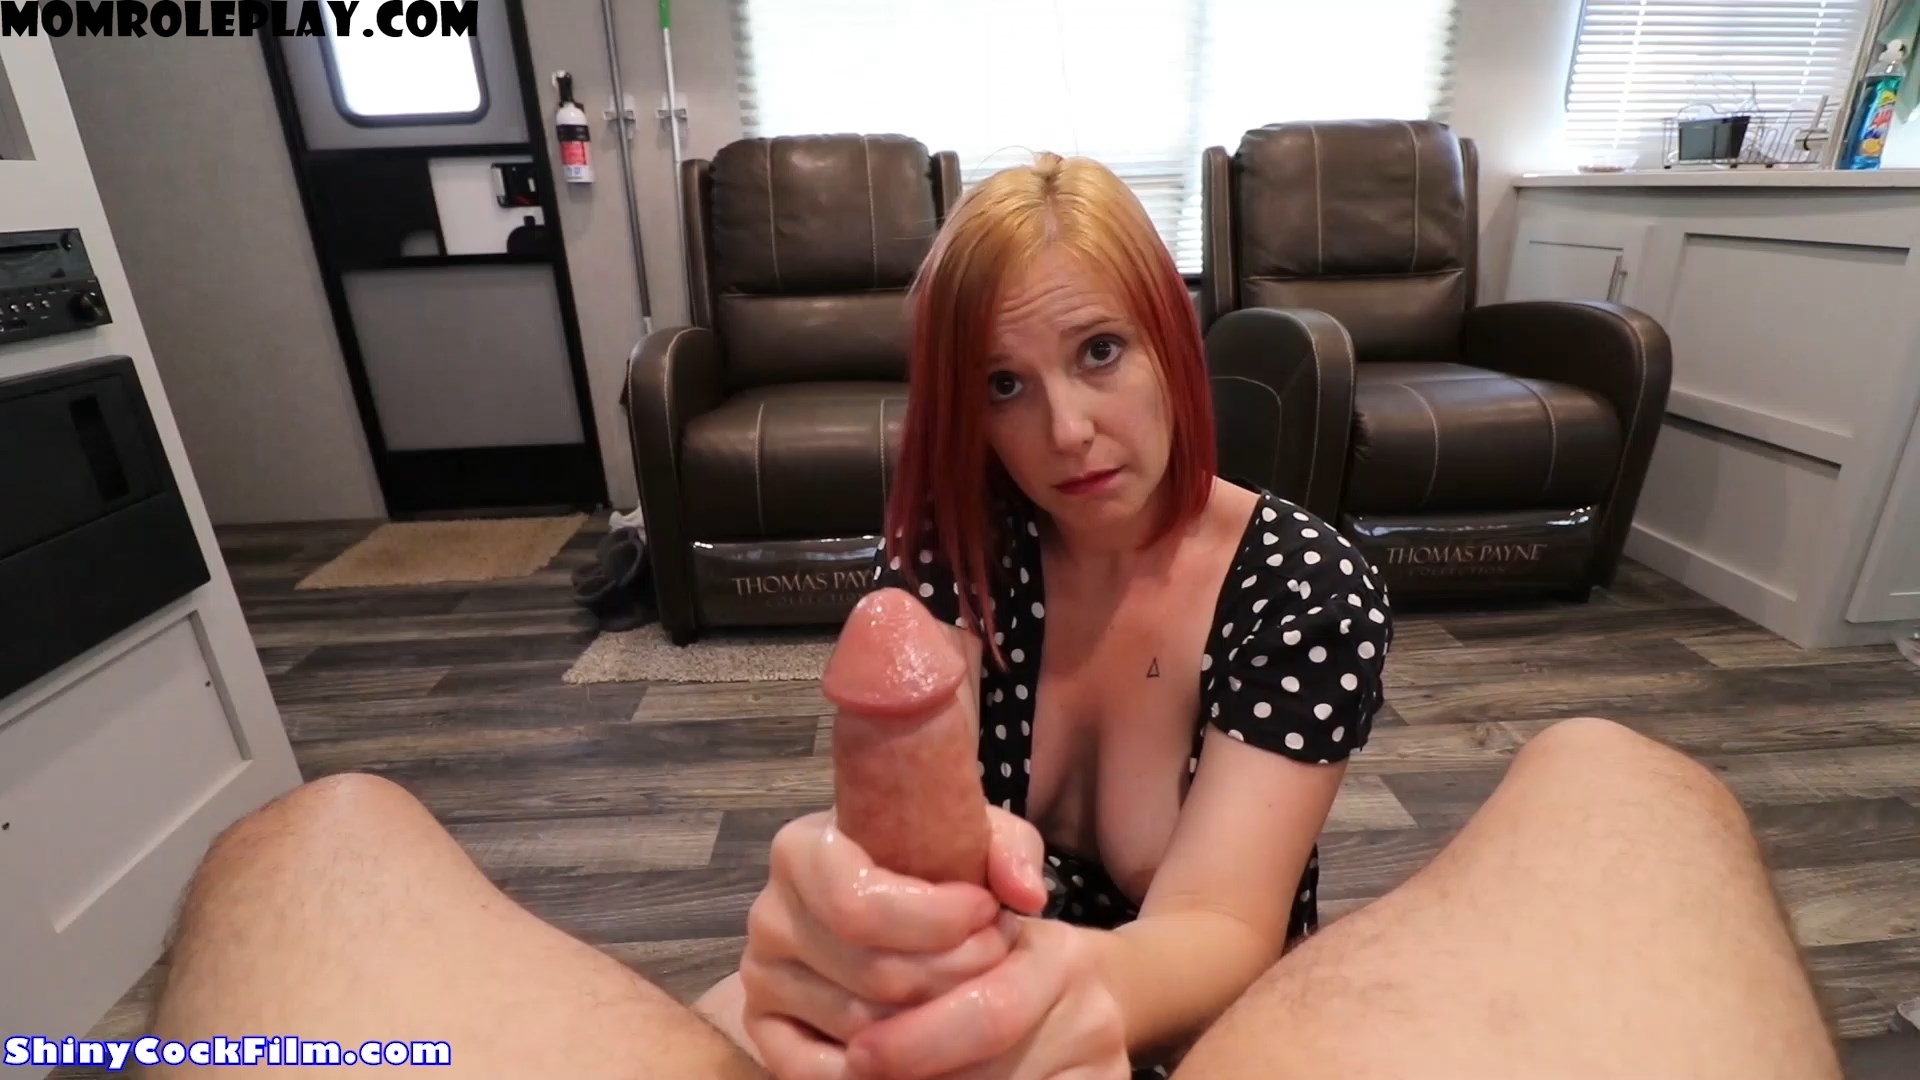 Jane Cane - Mom Takes Sons Virginity B4 Bootcamp # 2